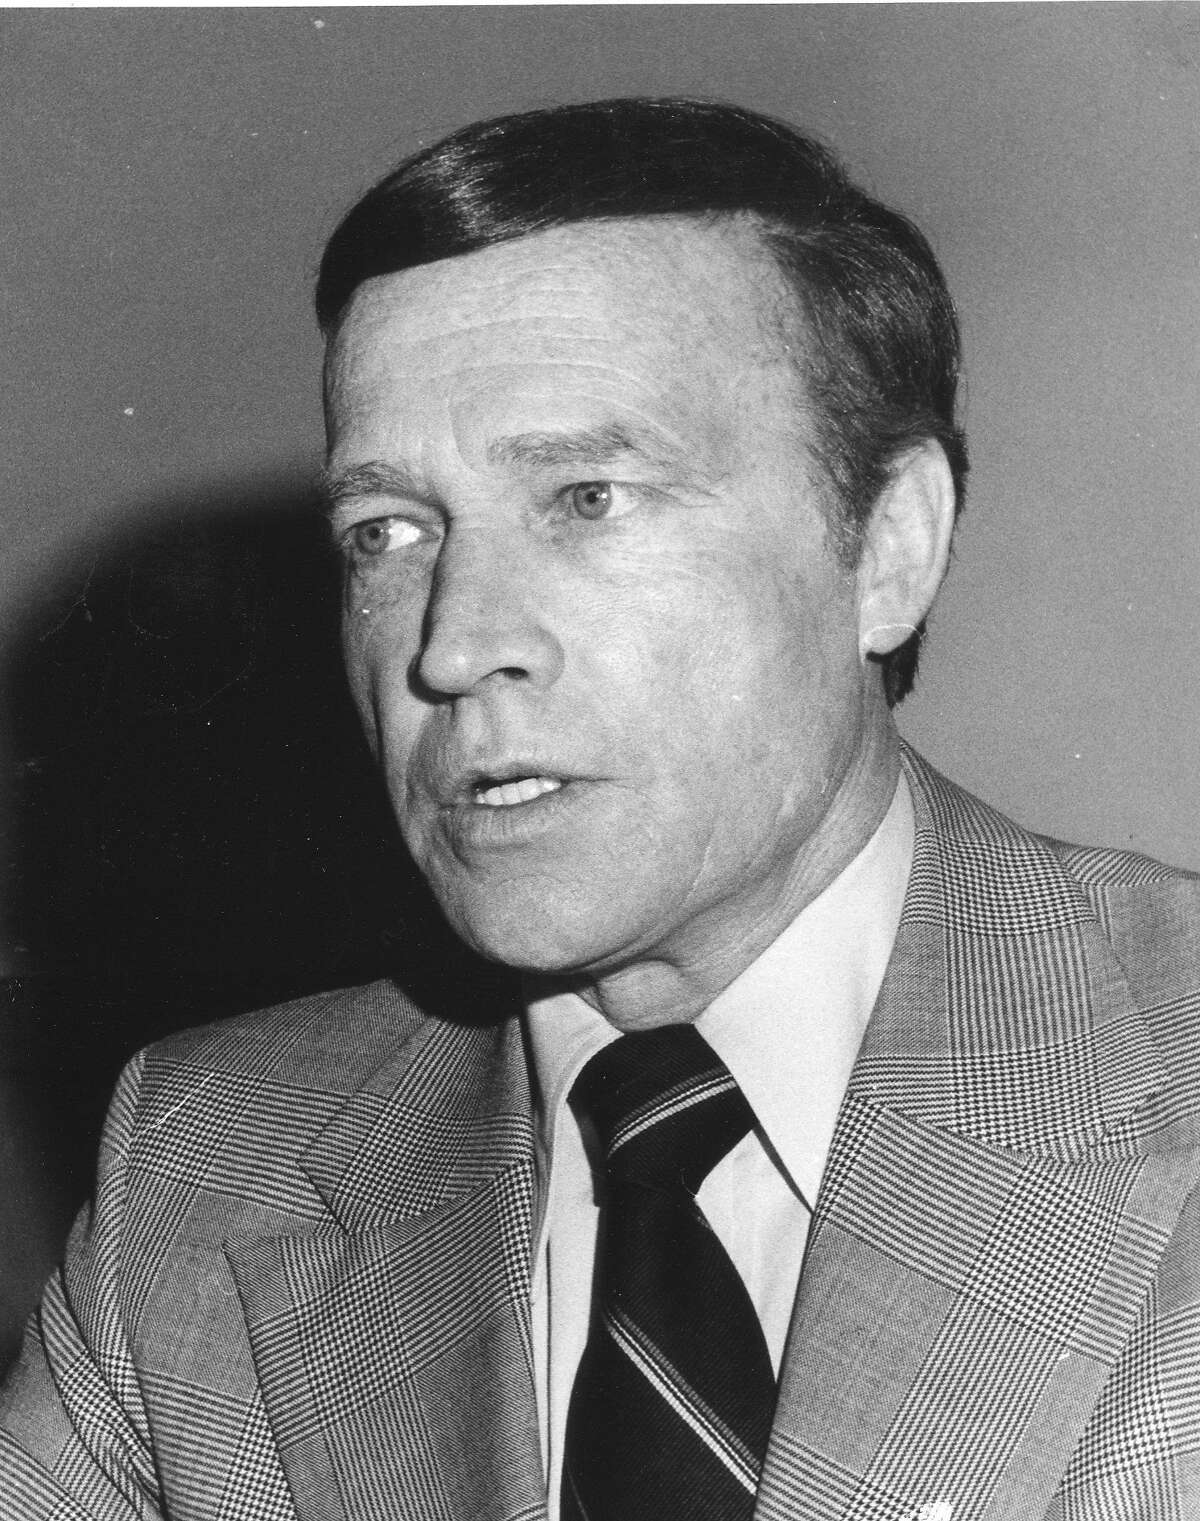 Police Chief Charles Gain, March 22, 1977